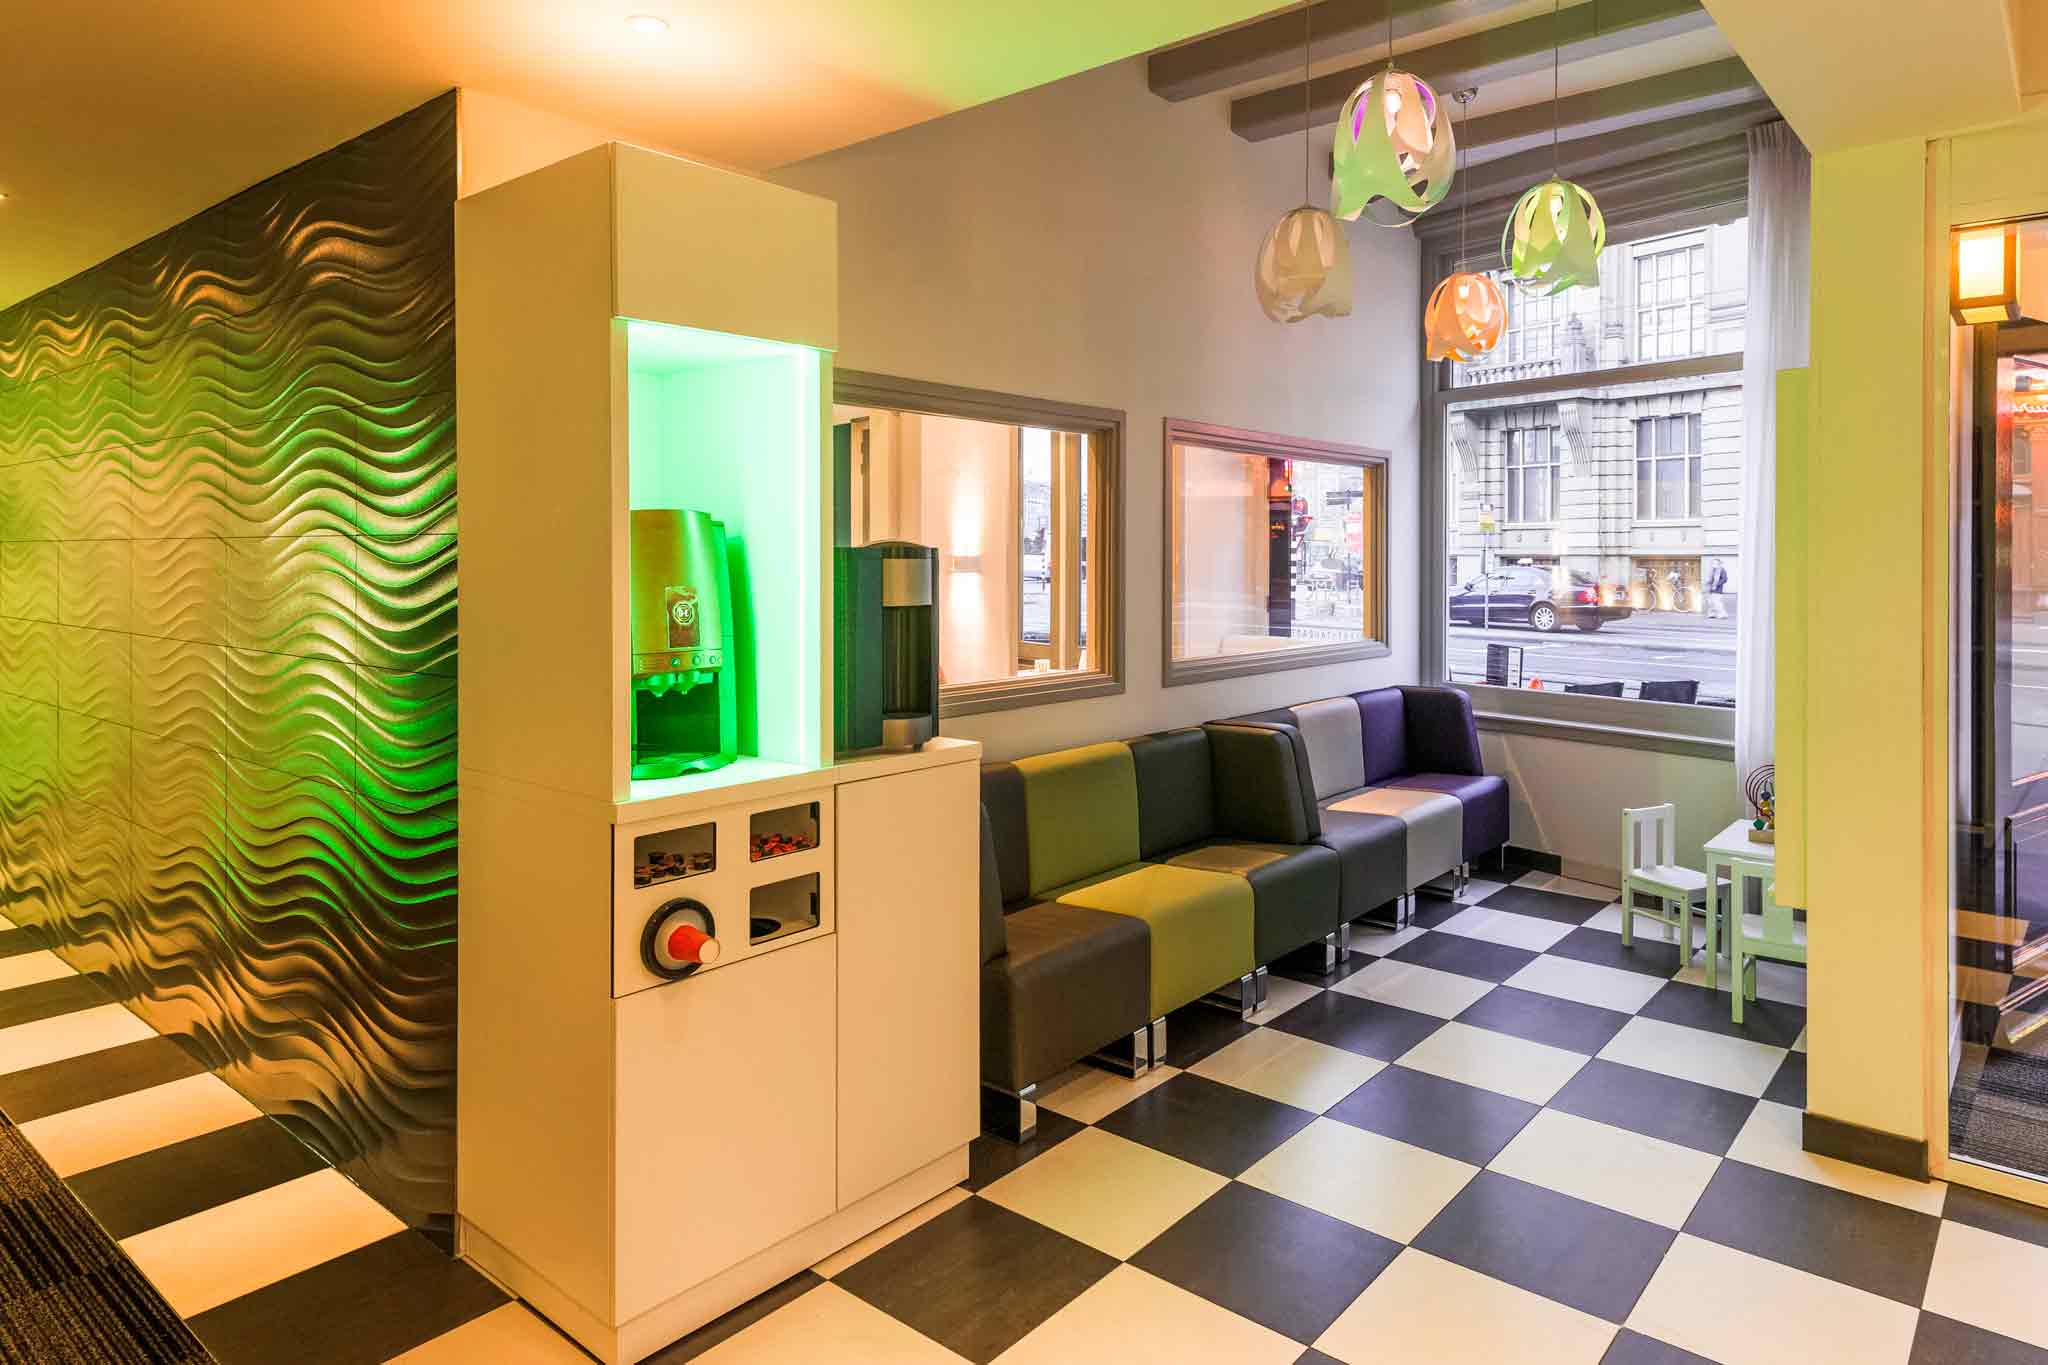 ibis Styles Amsterdam Central Station Relaxation centre